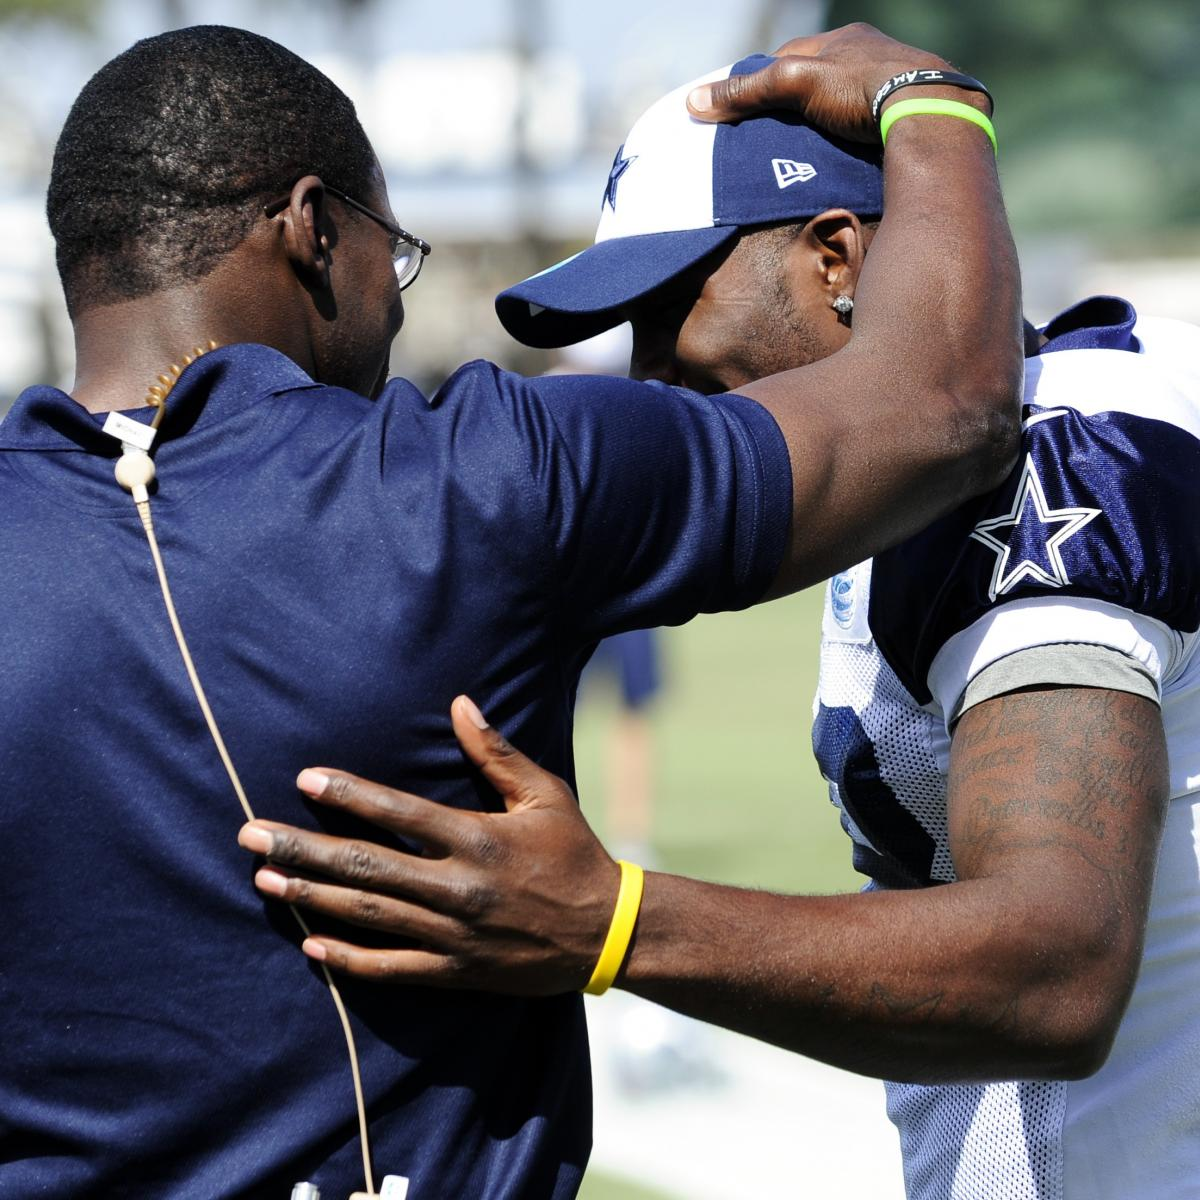 Michael Irvin Vs Dez Bryant Who Will Go Down As Greatest